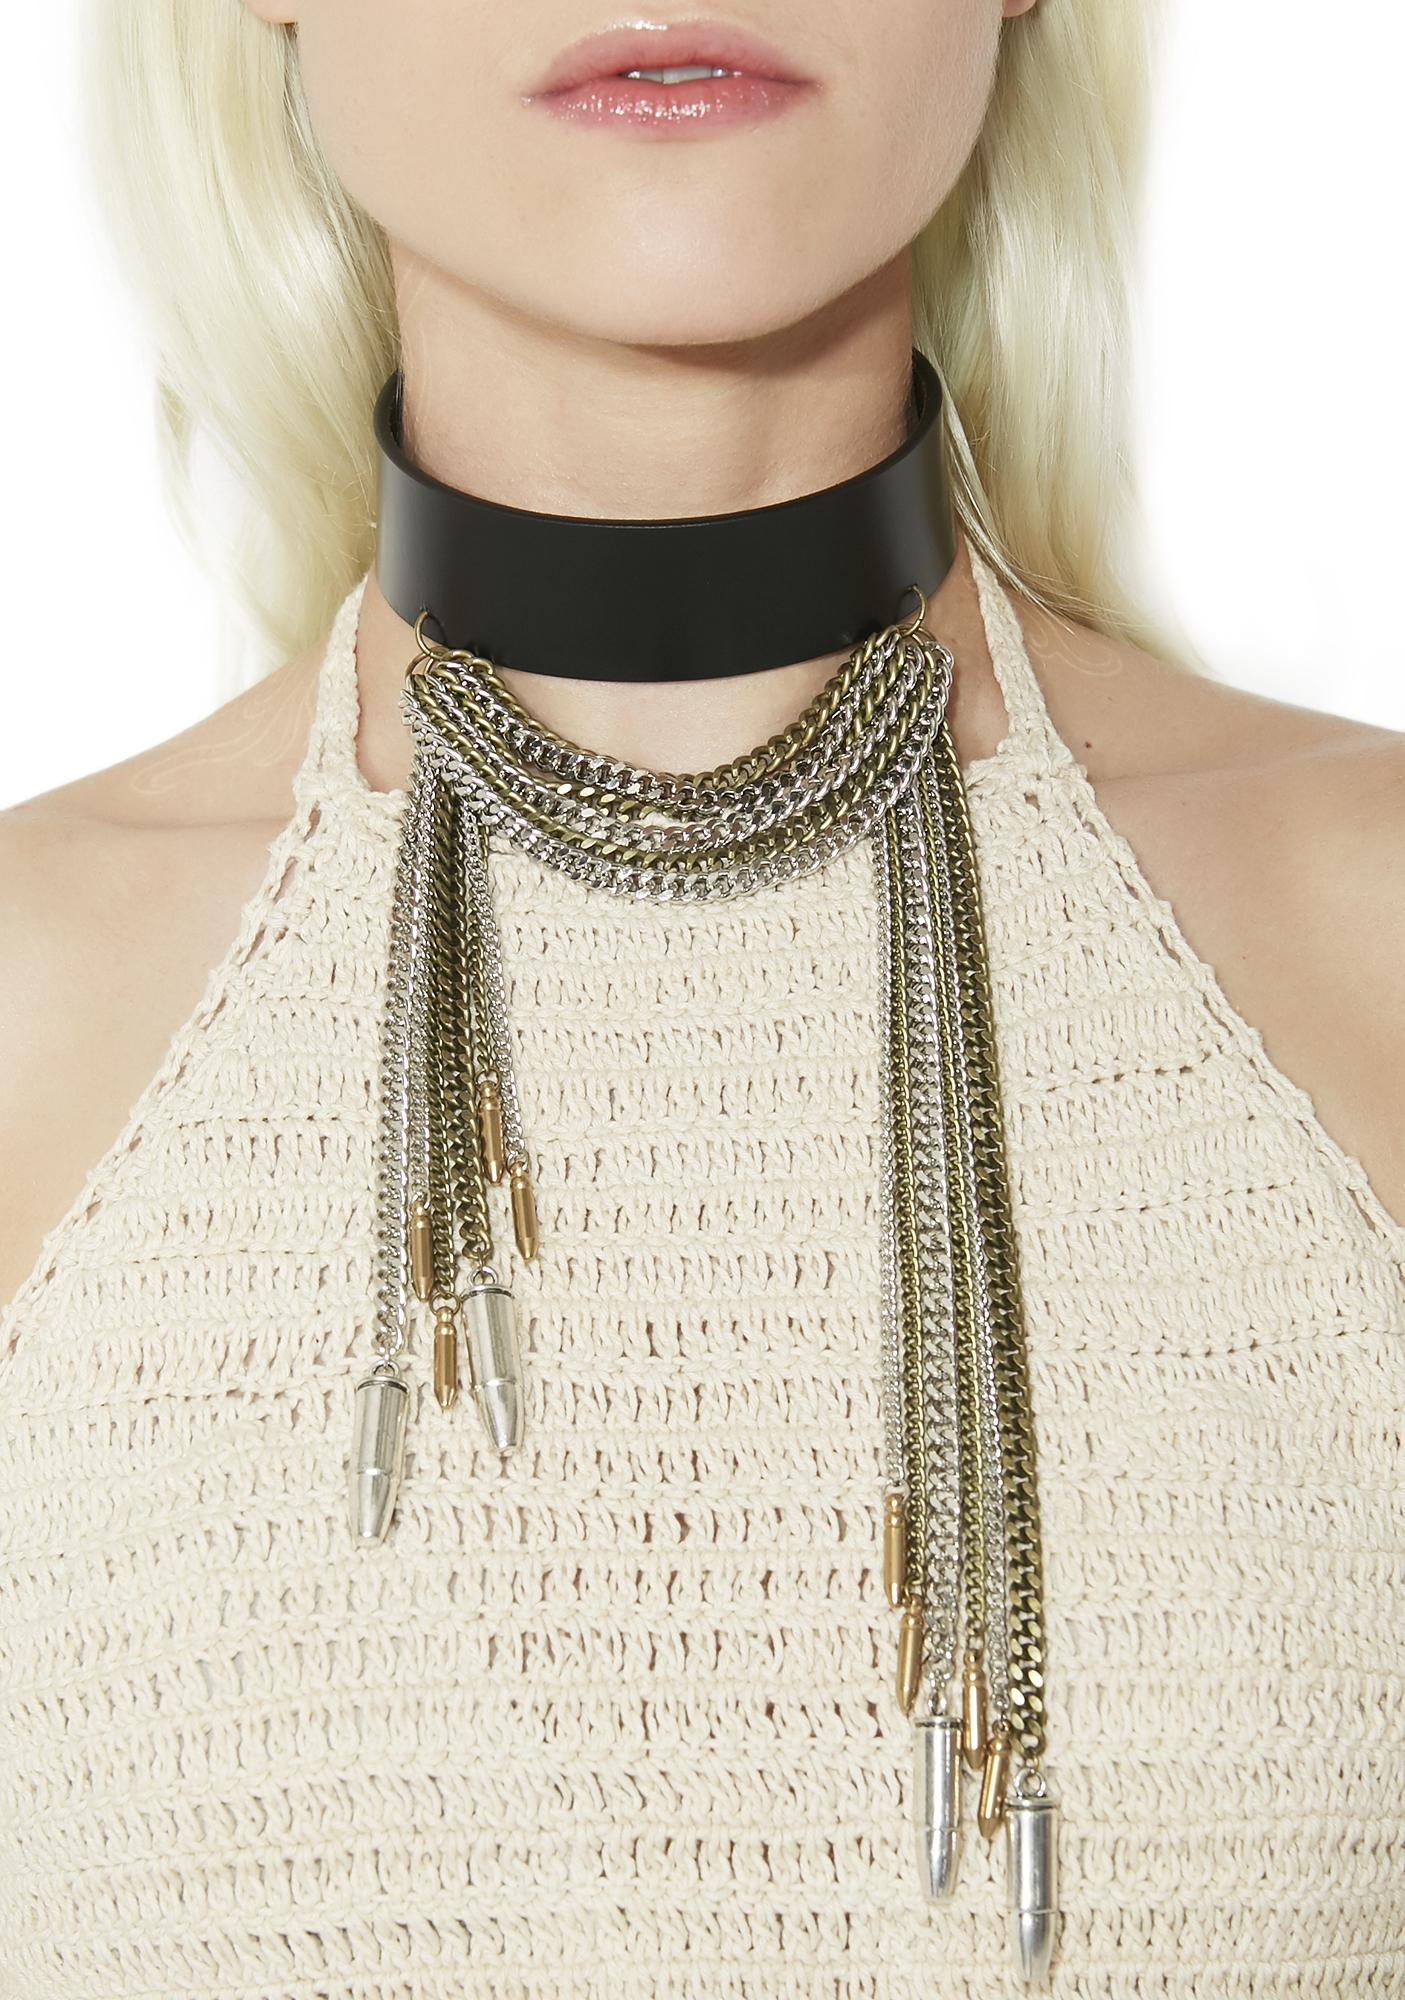 Lea Christine Janie's Got All Bullets Choker